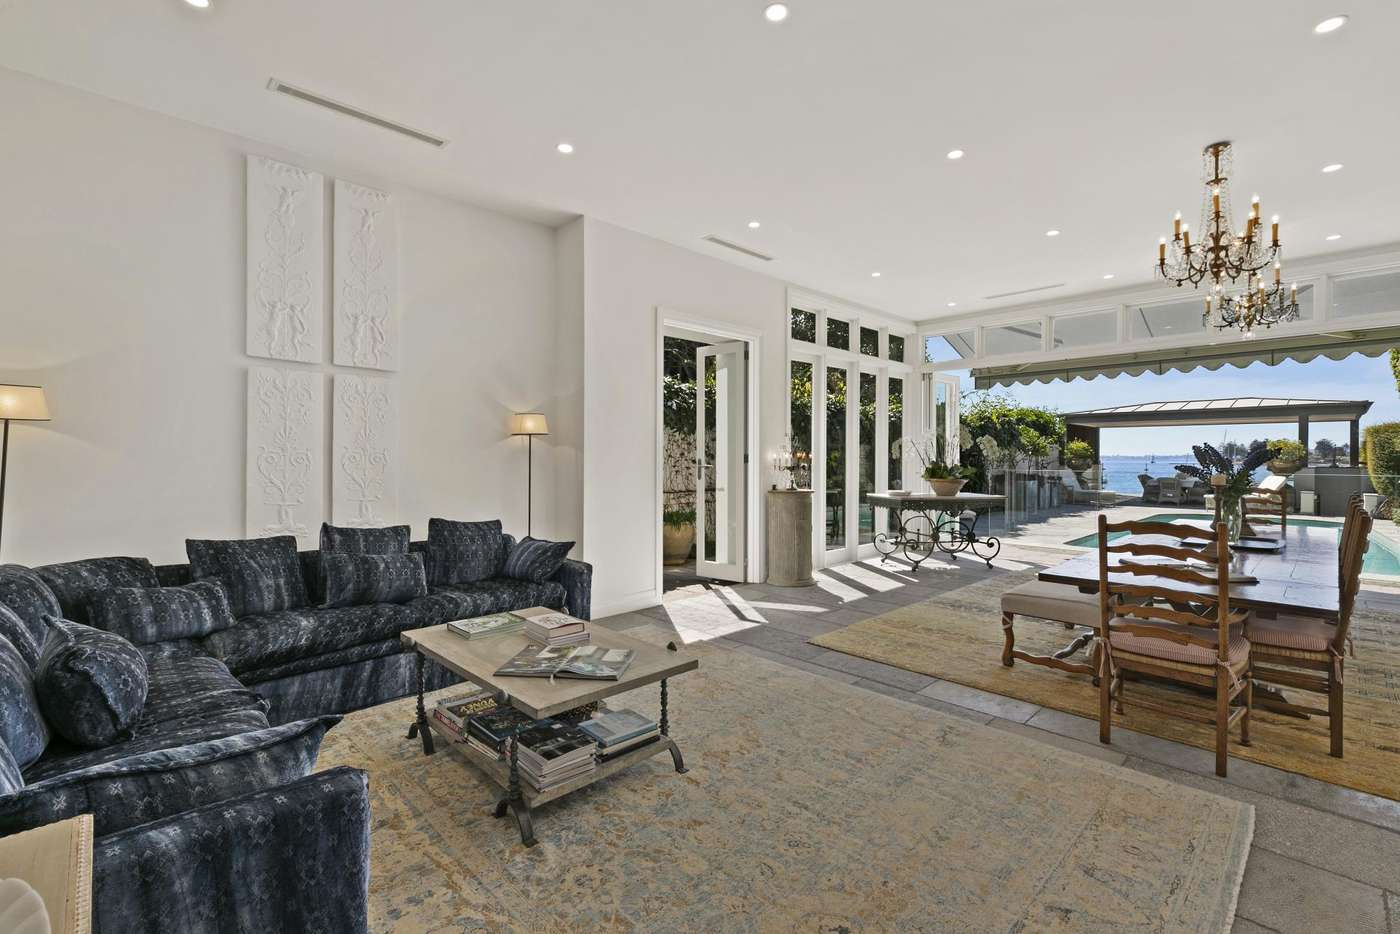 Fifth view of Homely house listing, 152 Wolseley Road, Point Piper NSW 2027